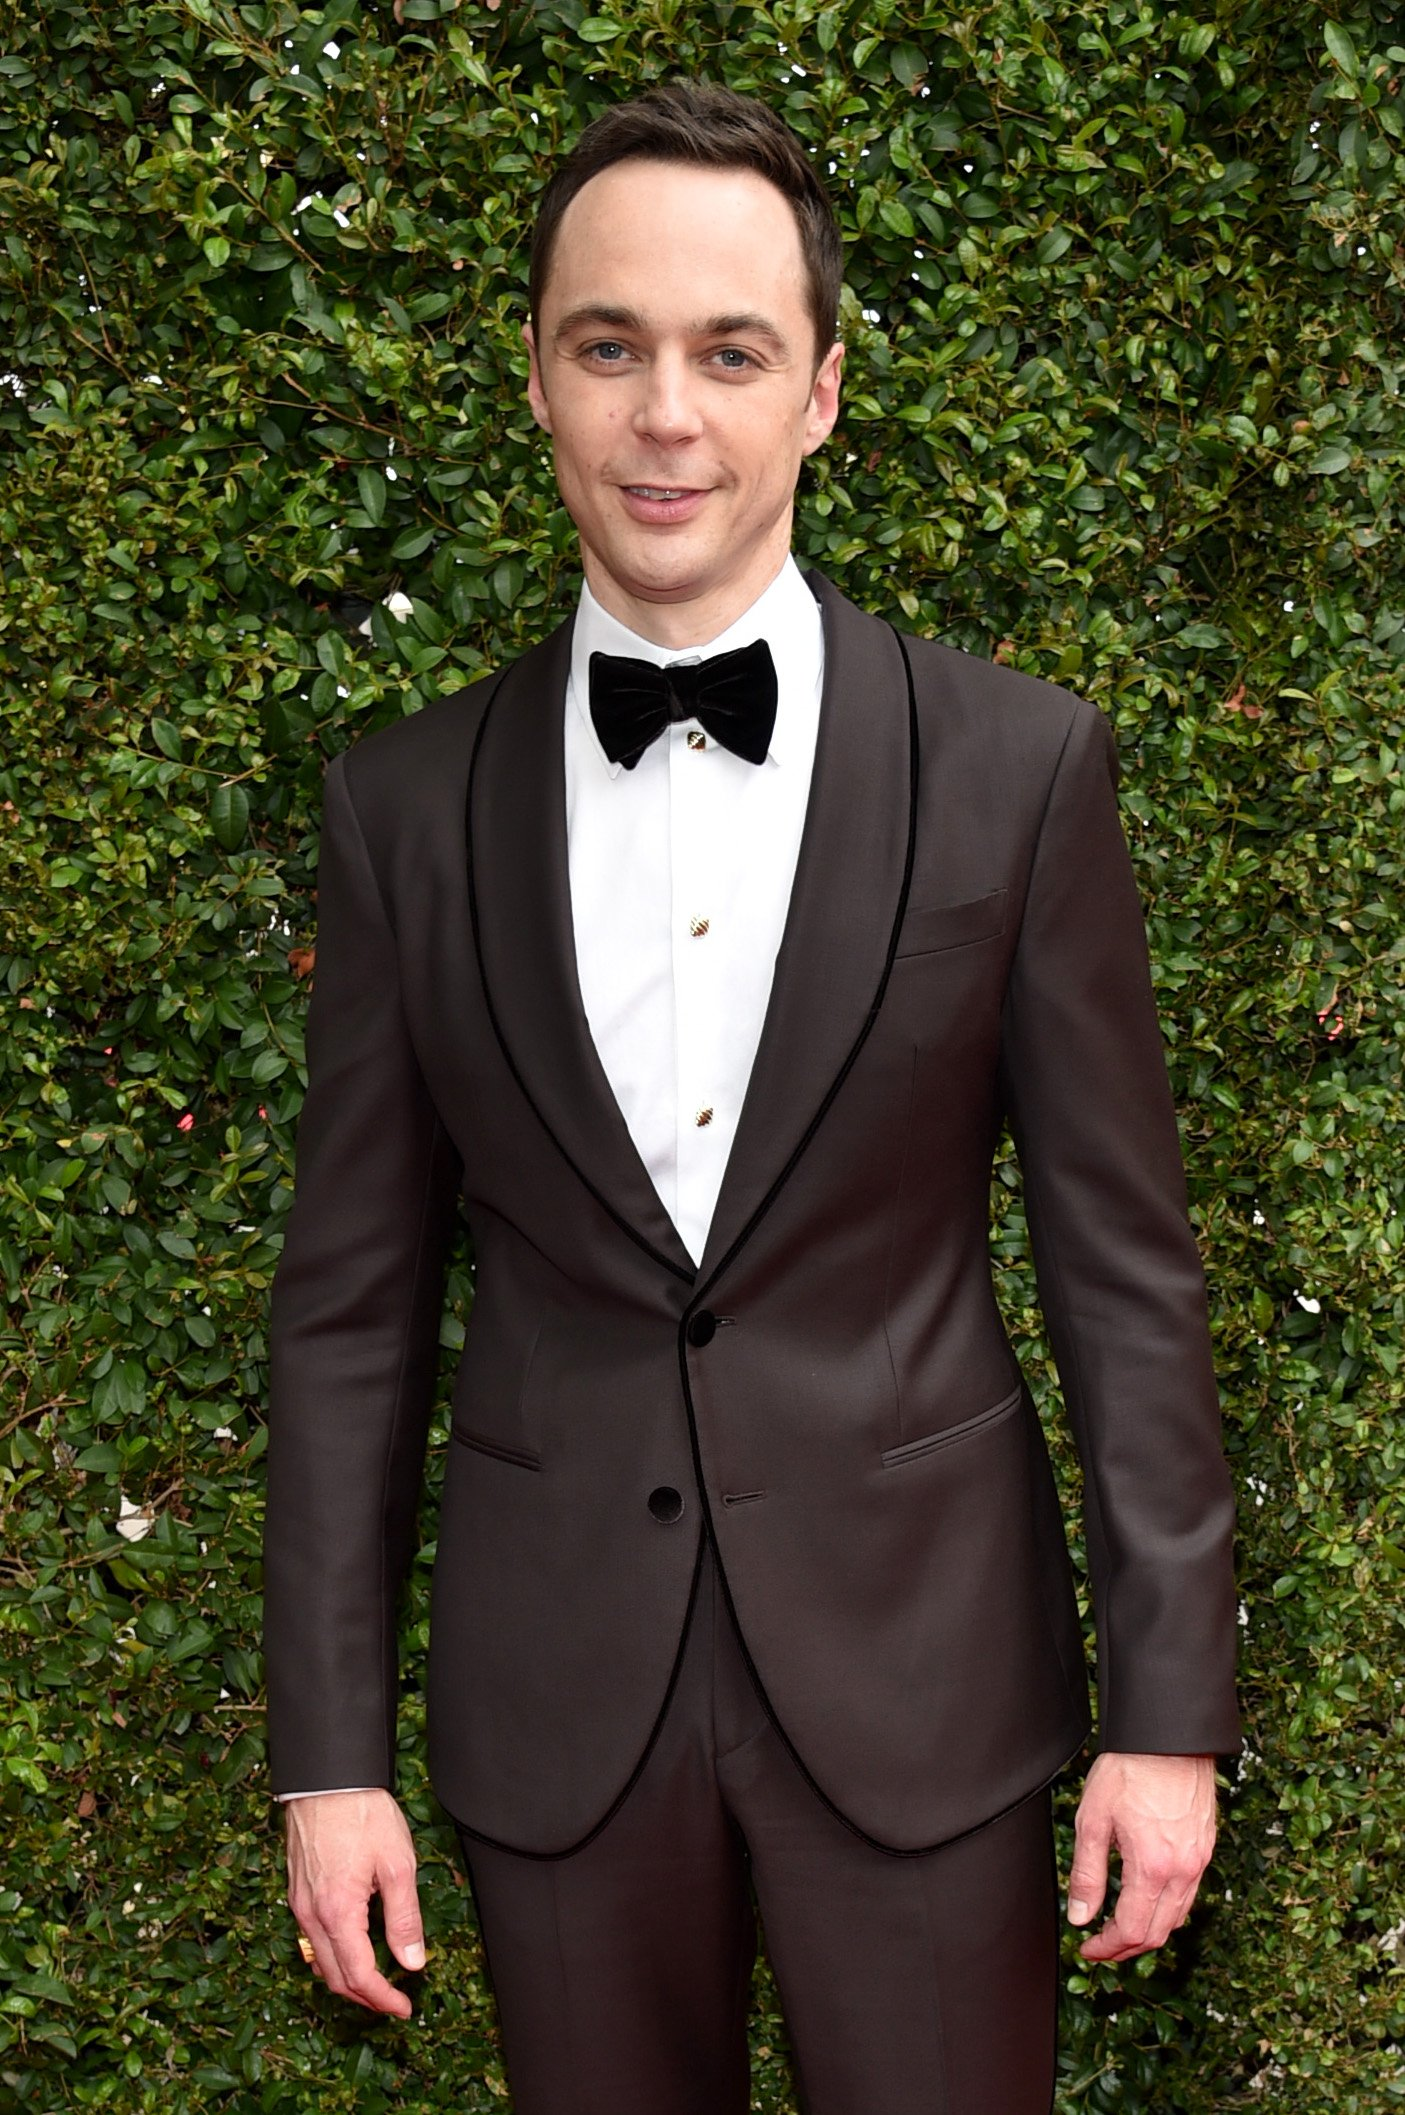 Jim Parsons arrives at the 66th Primetime Emmy Awards at the Nokia Theatre L.A. Live on Monday, Aug. 25, 2014, in Los Angeles.